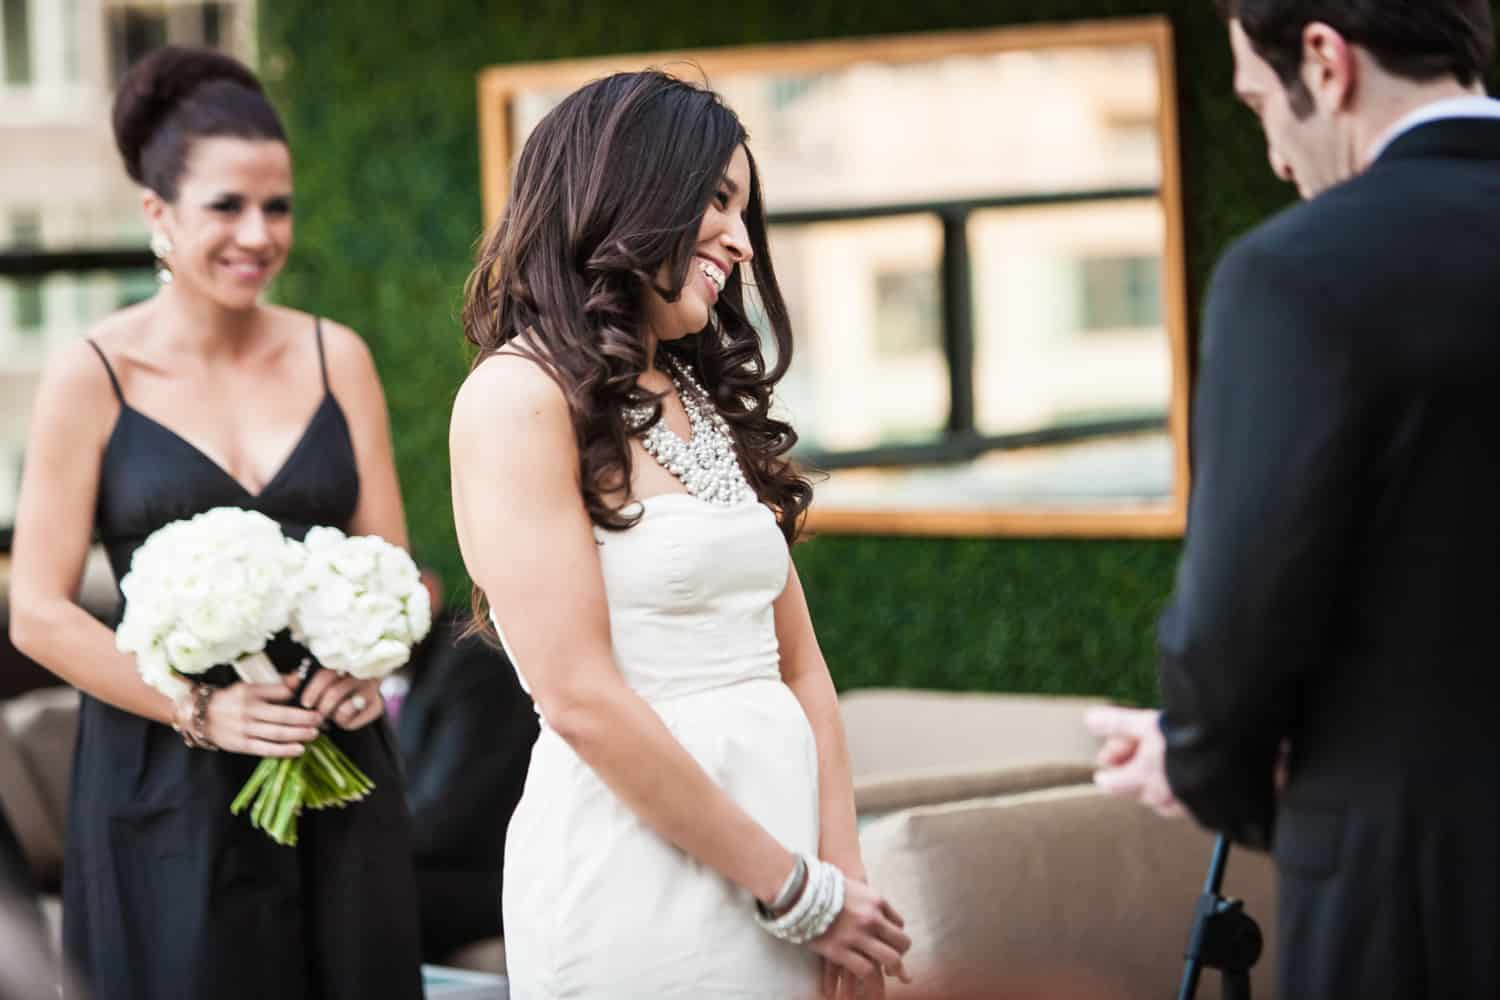 Bride smiling during ceremony at an Empire Hotel rooftop wedding